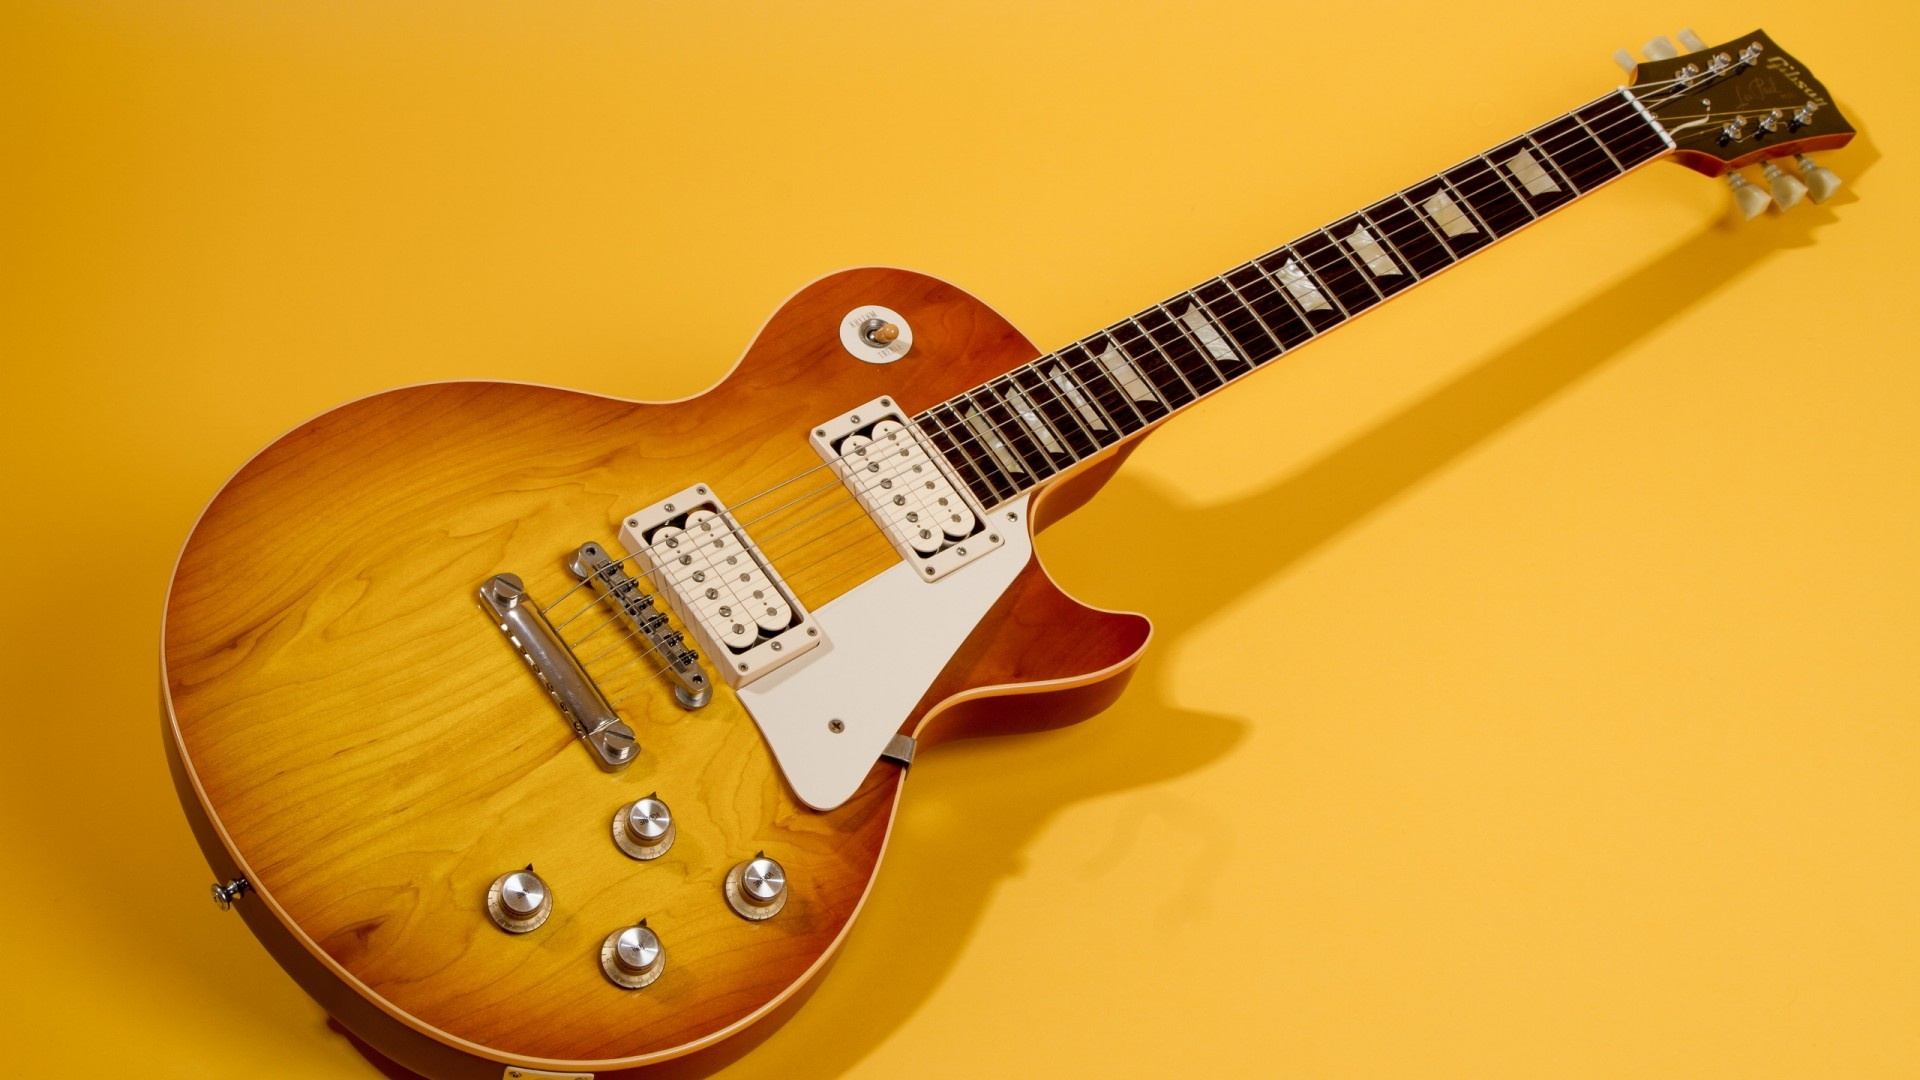 Gibson Guitar Wallpaper - WallpaperSafari